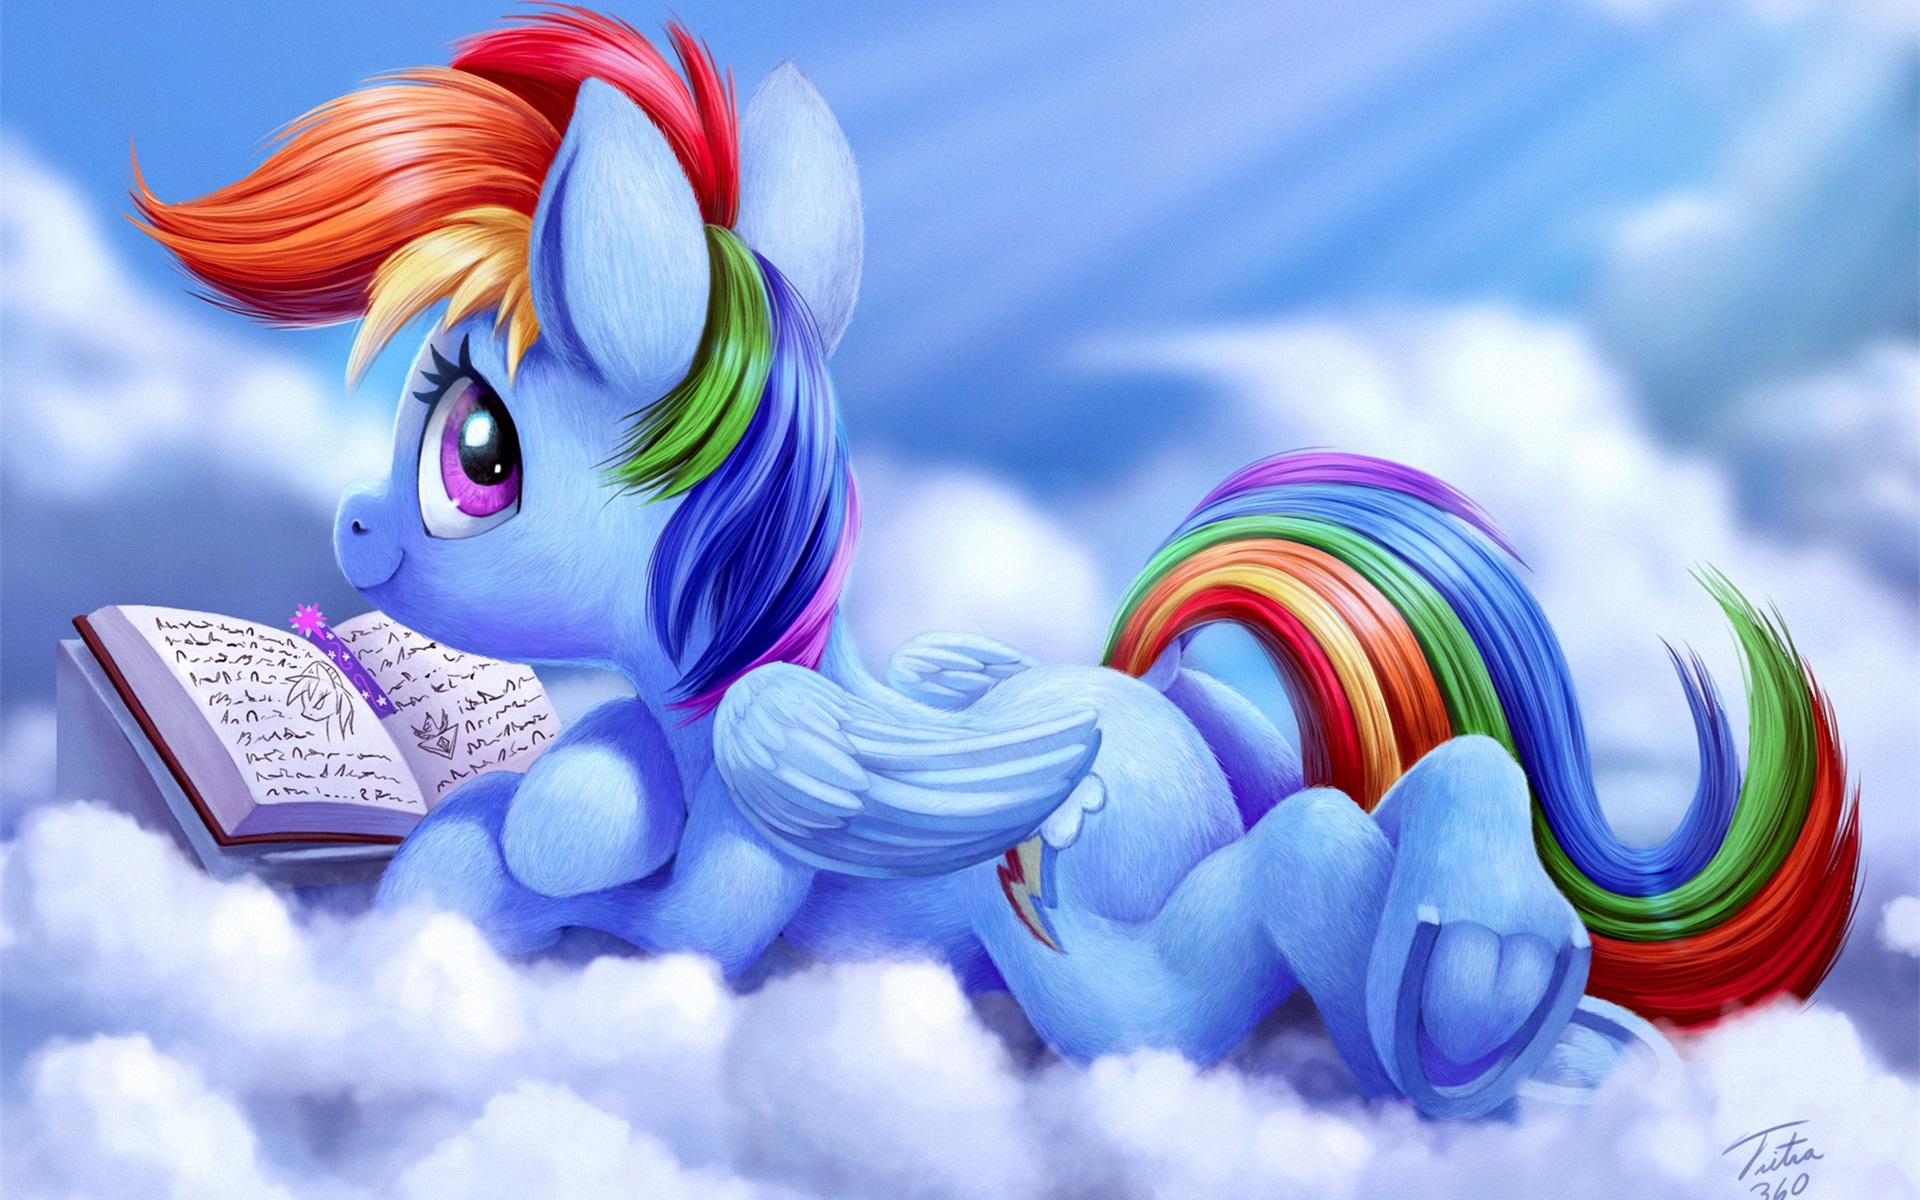 My Little Pony Friendship Is Magic Hd Wallpaper For Iphone